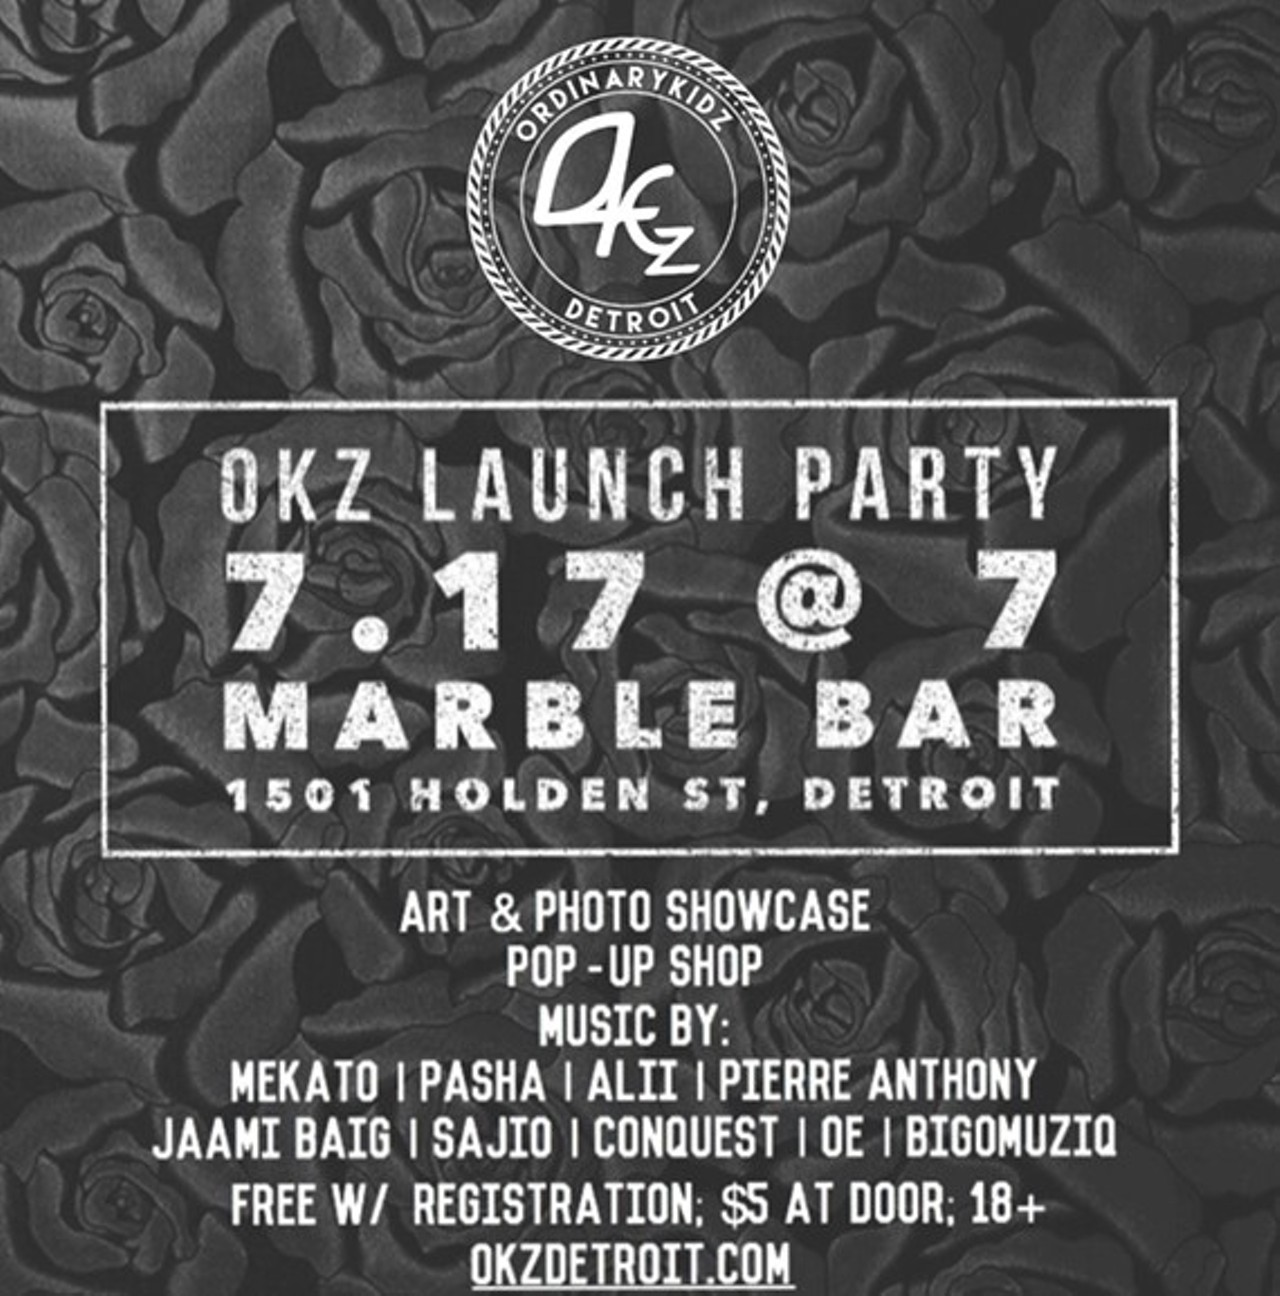 Okz launch party marble bar party detroit metro times for Marble bar detroit